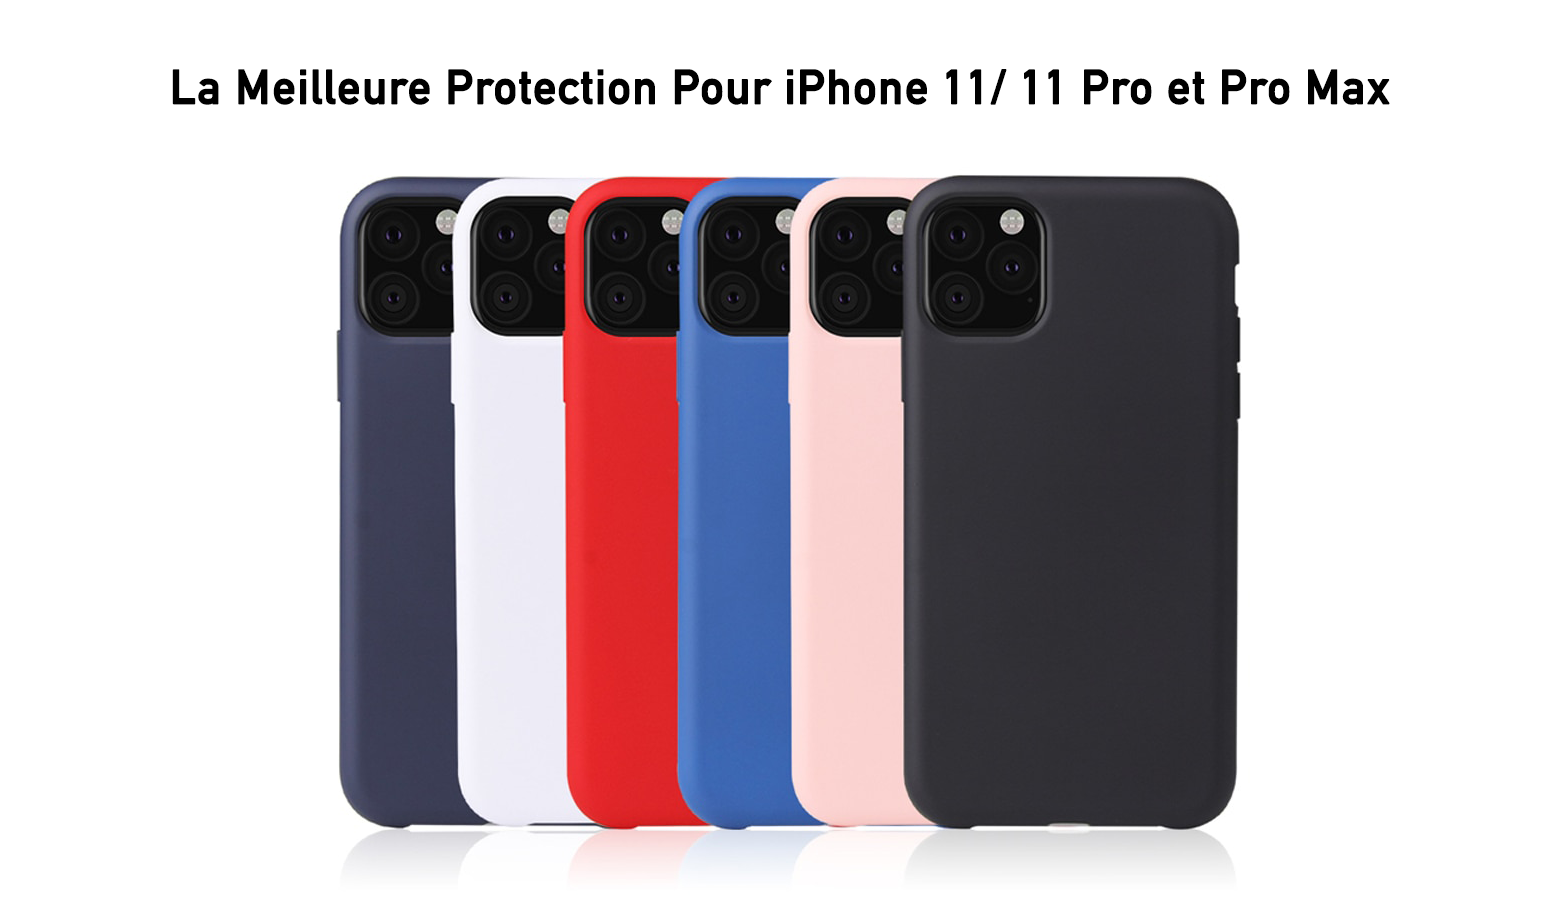 Coque Silicone iPhone 11/ 11Pro/ 11 Pro Max - TelOneiPhone.fr